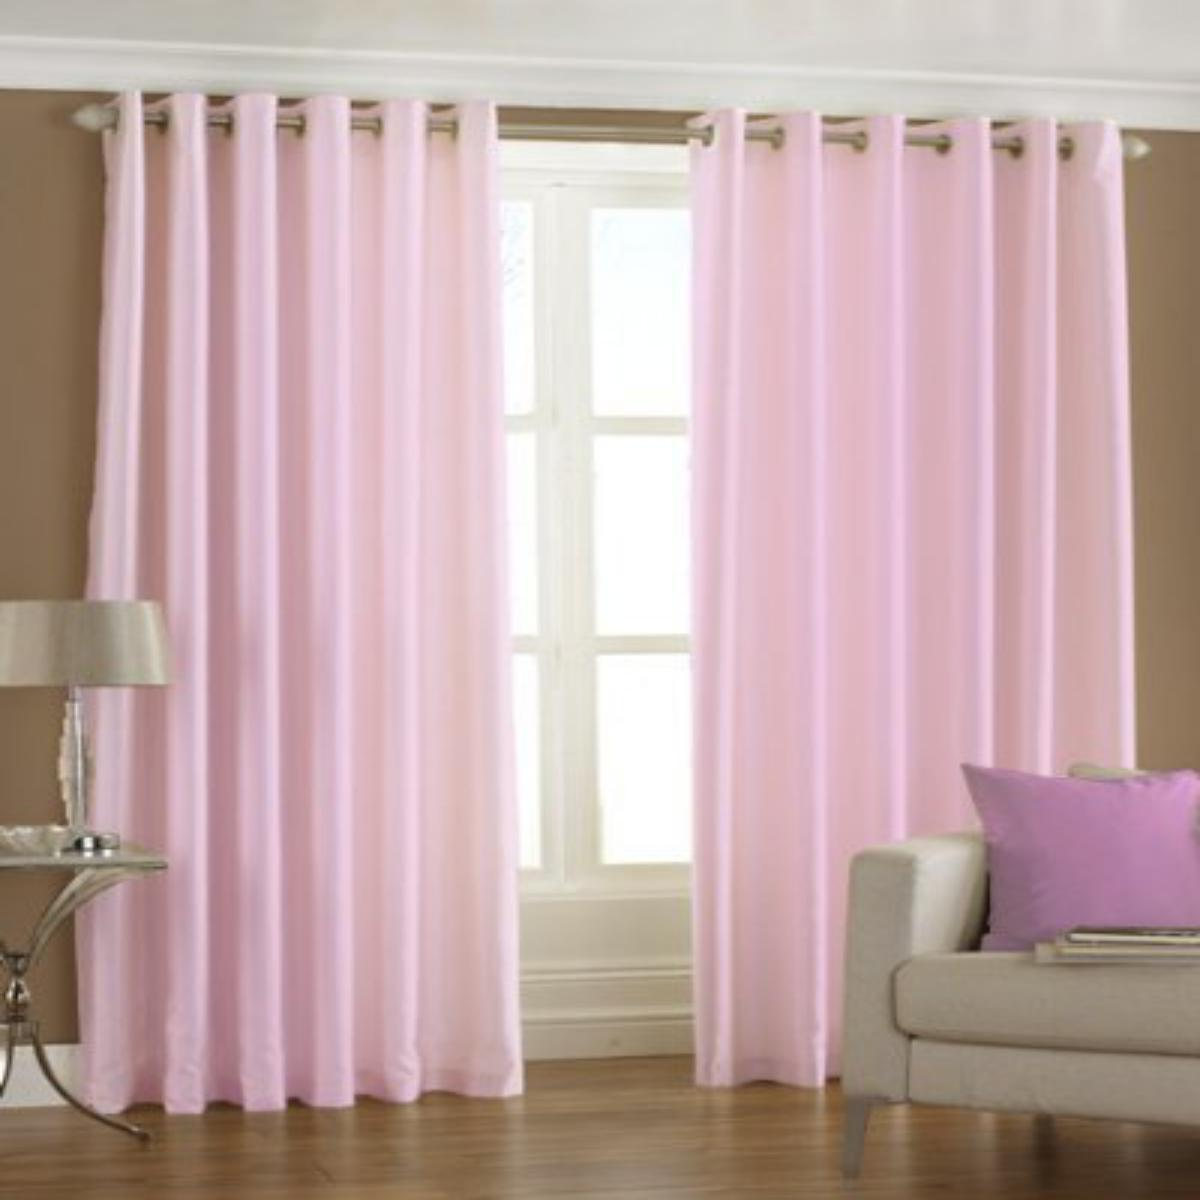 IndianOnlineMall Plain Single crush curtain(4x7ft)